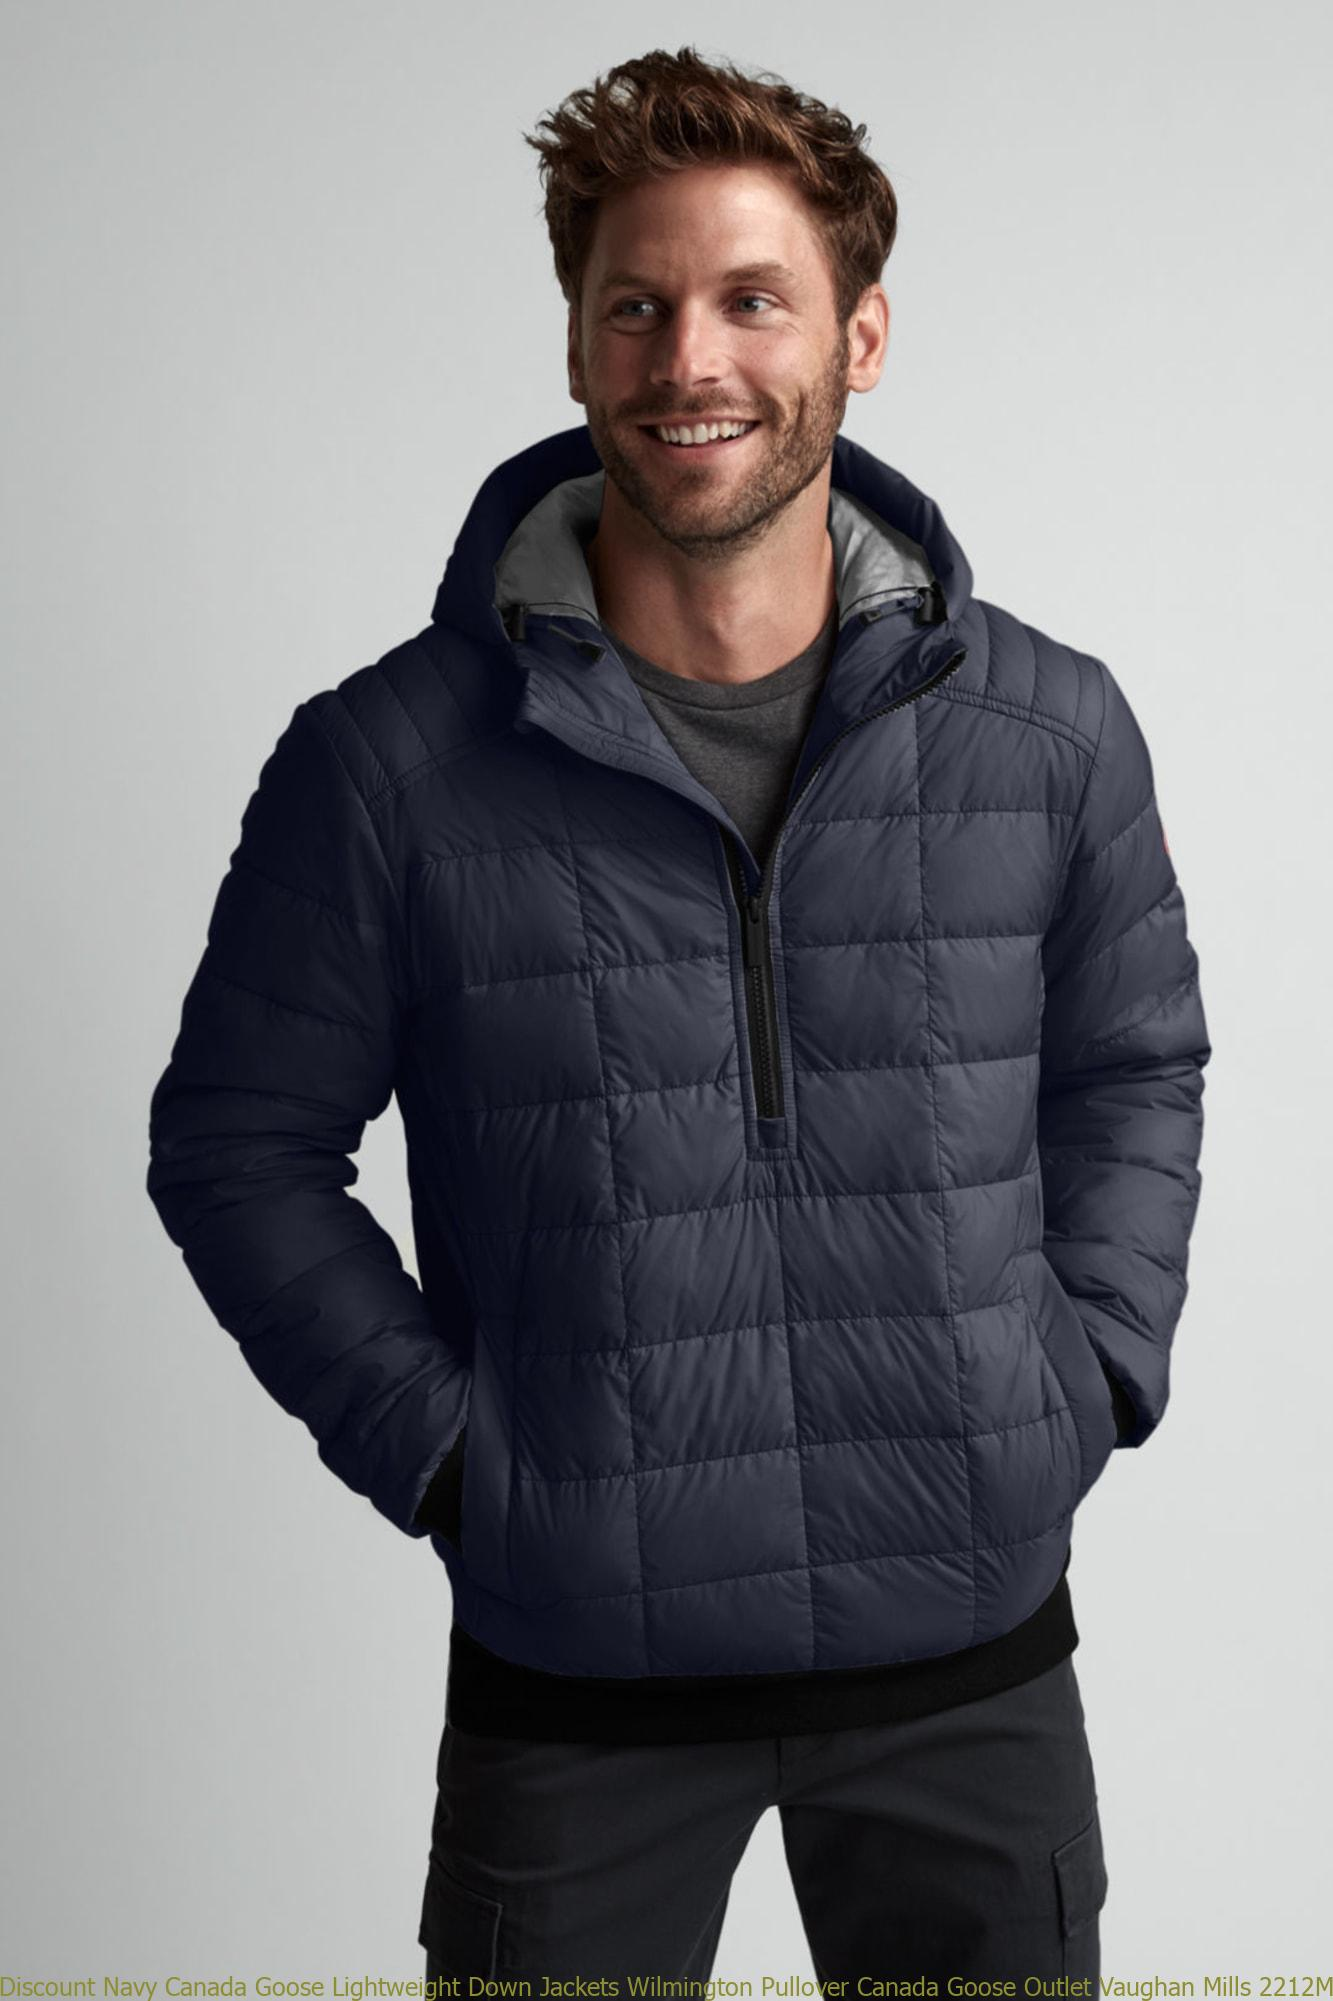 Discount Navy Canada Goose Lightweight Down Jackets Wilmington Pullover Canada Goose Outlet Vaughan Mills 2212M